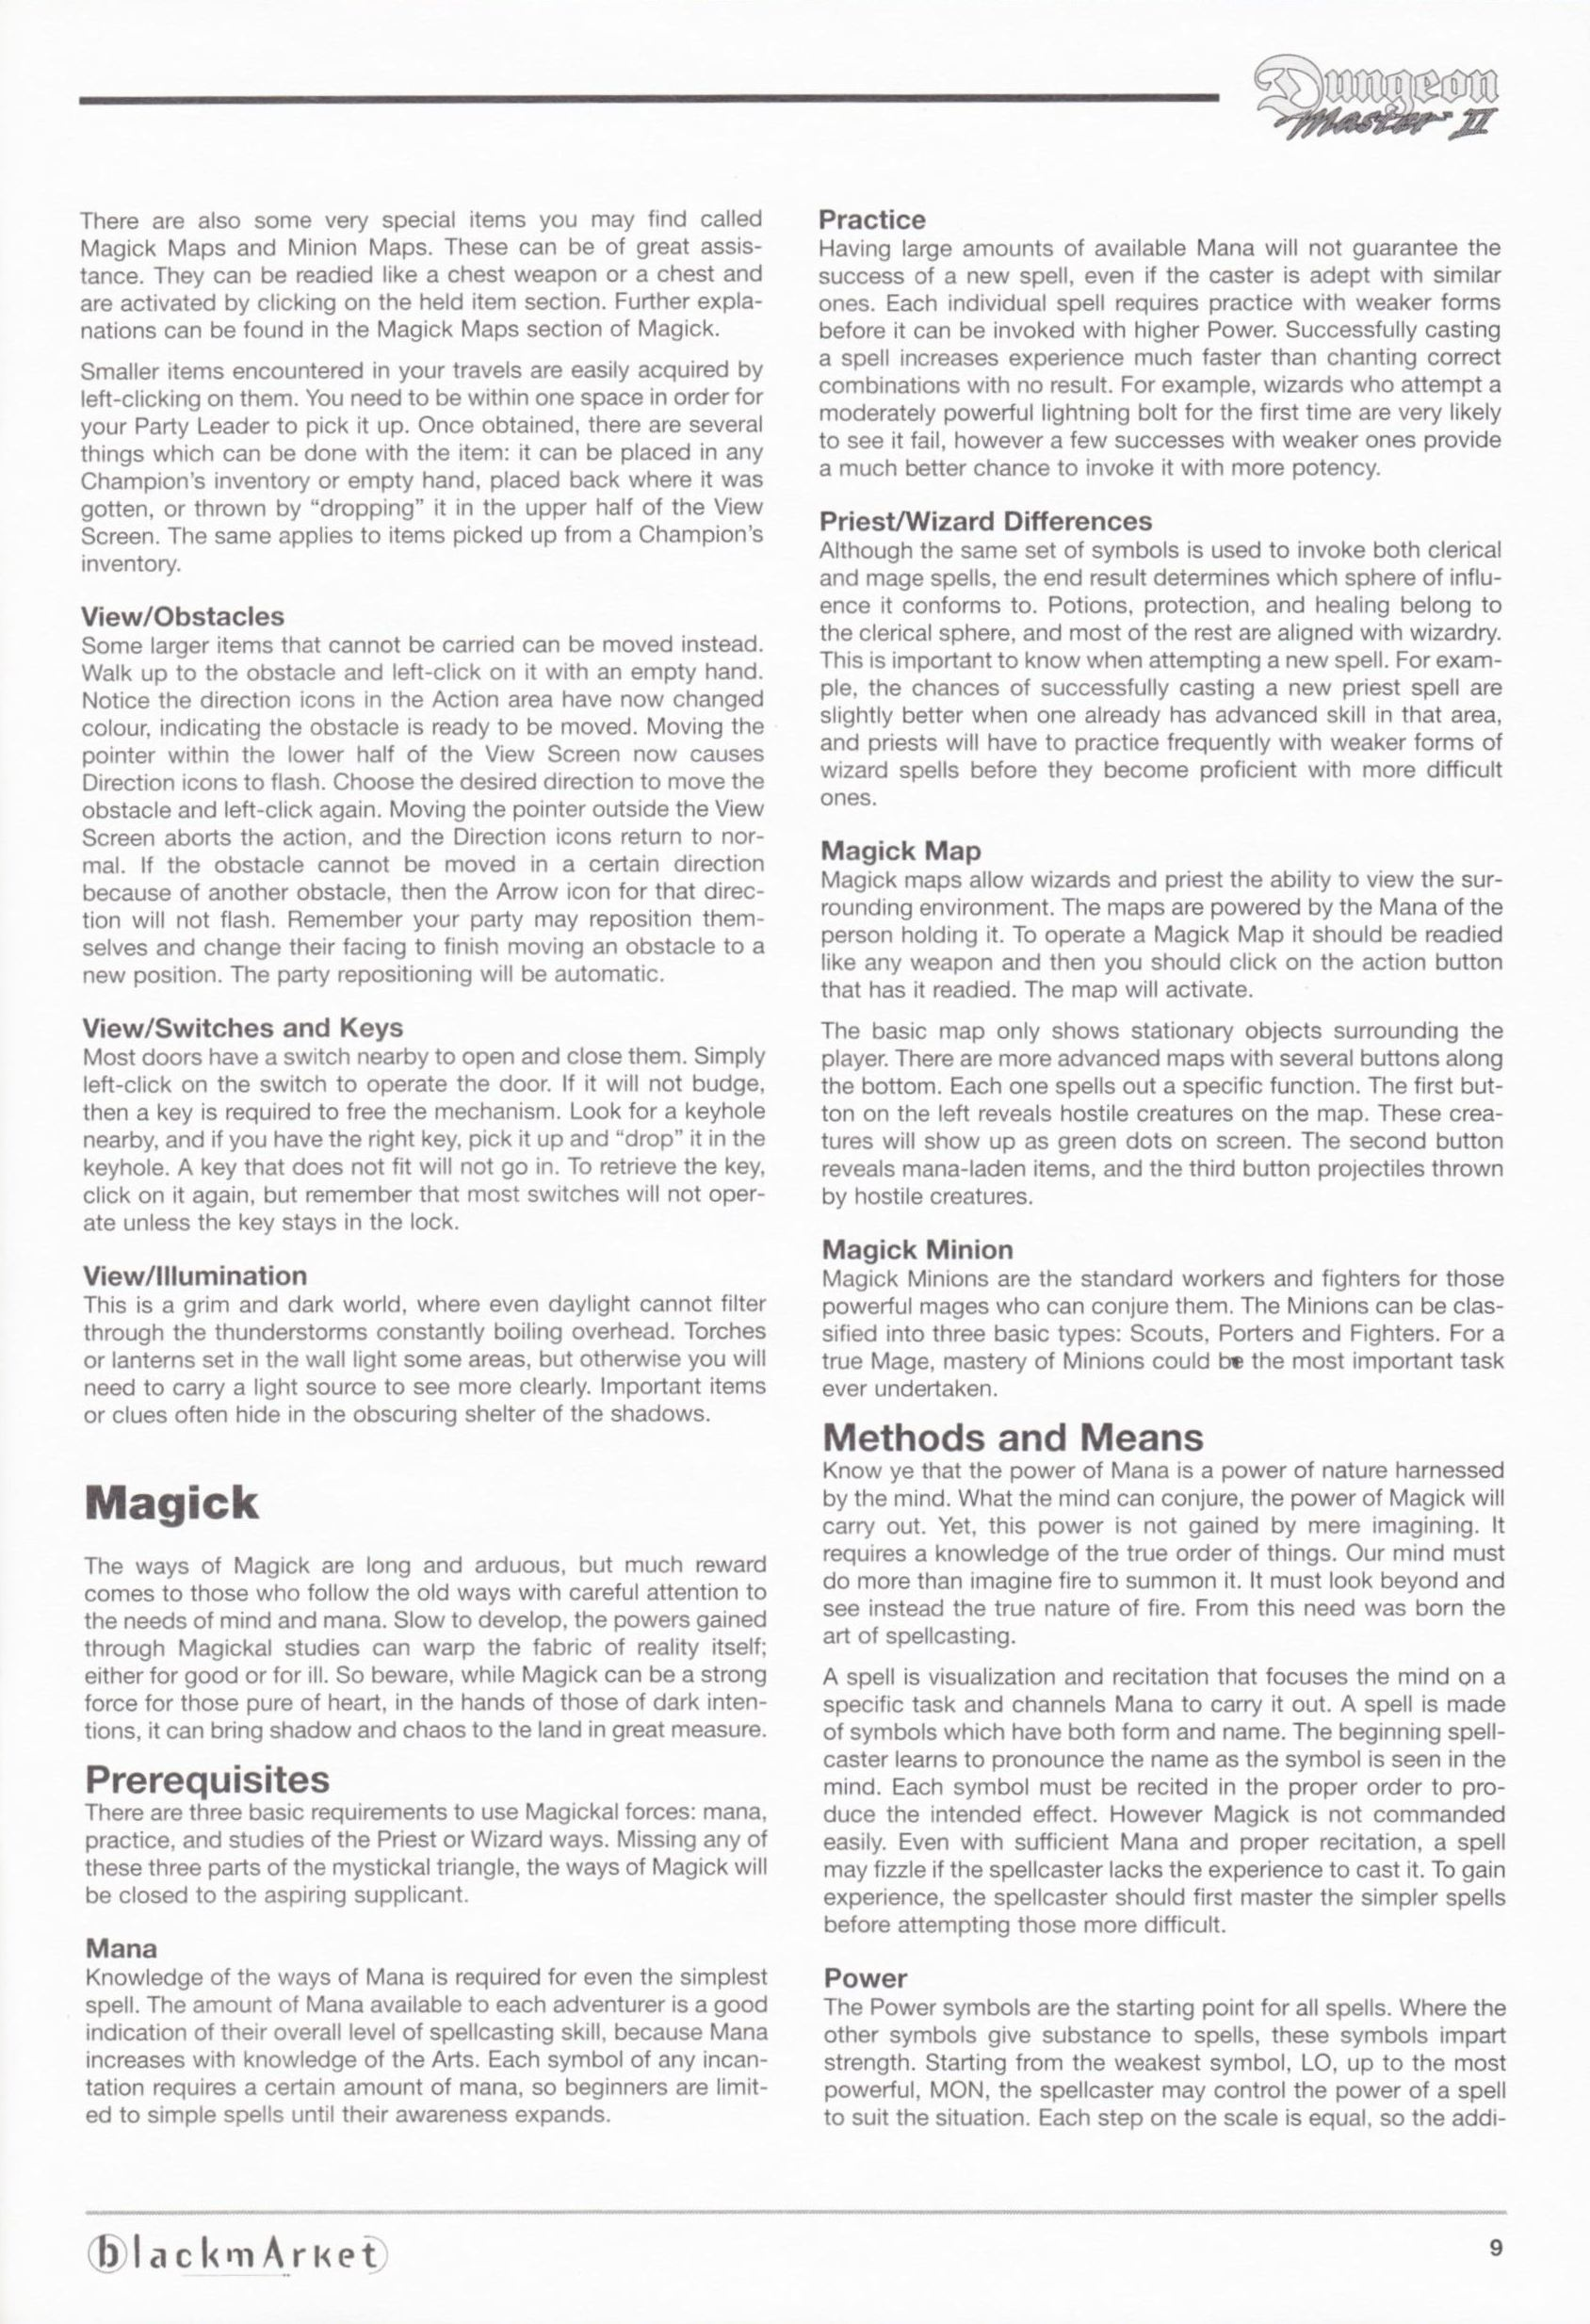 Game - Dungeon Master II - DE - PC - Blackmarket With Manual - Manual - Page 011 - Scan